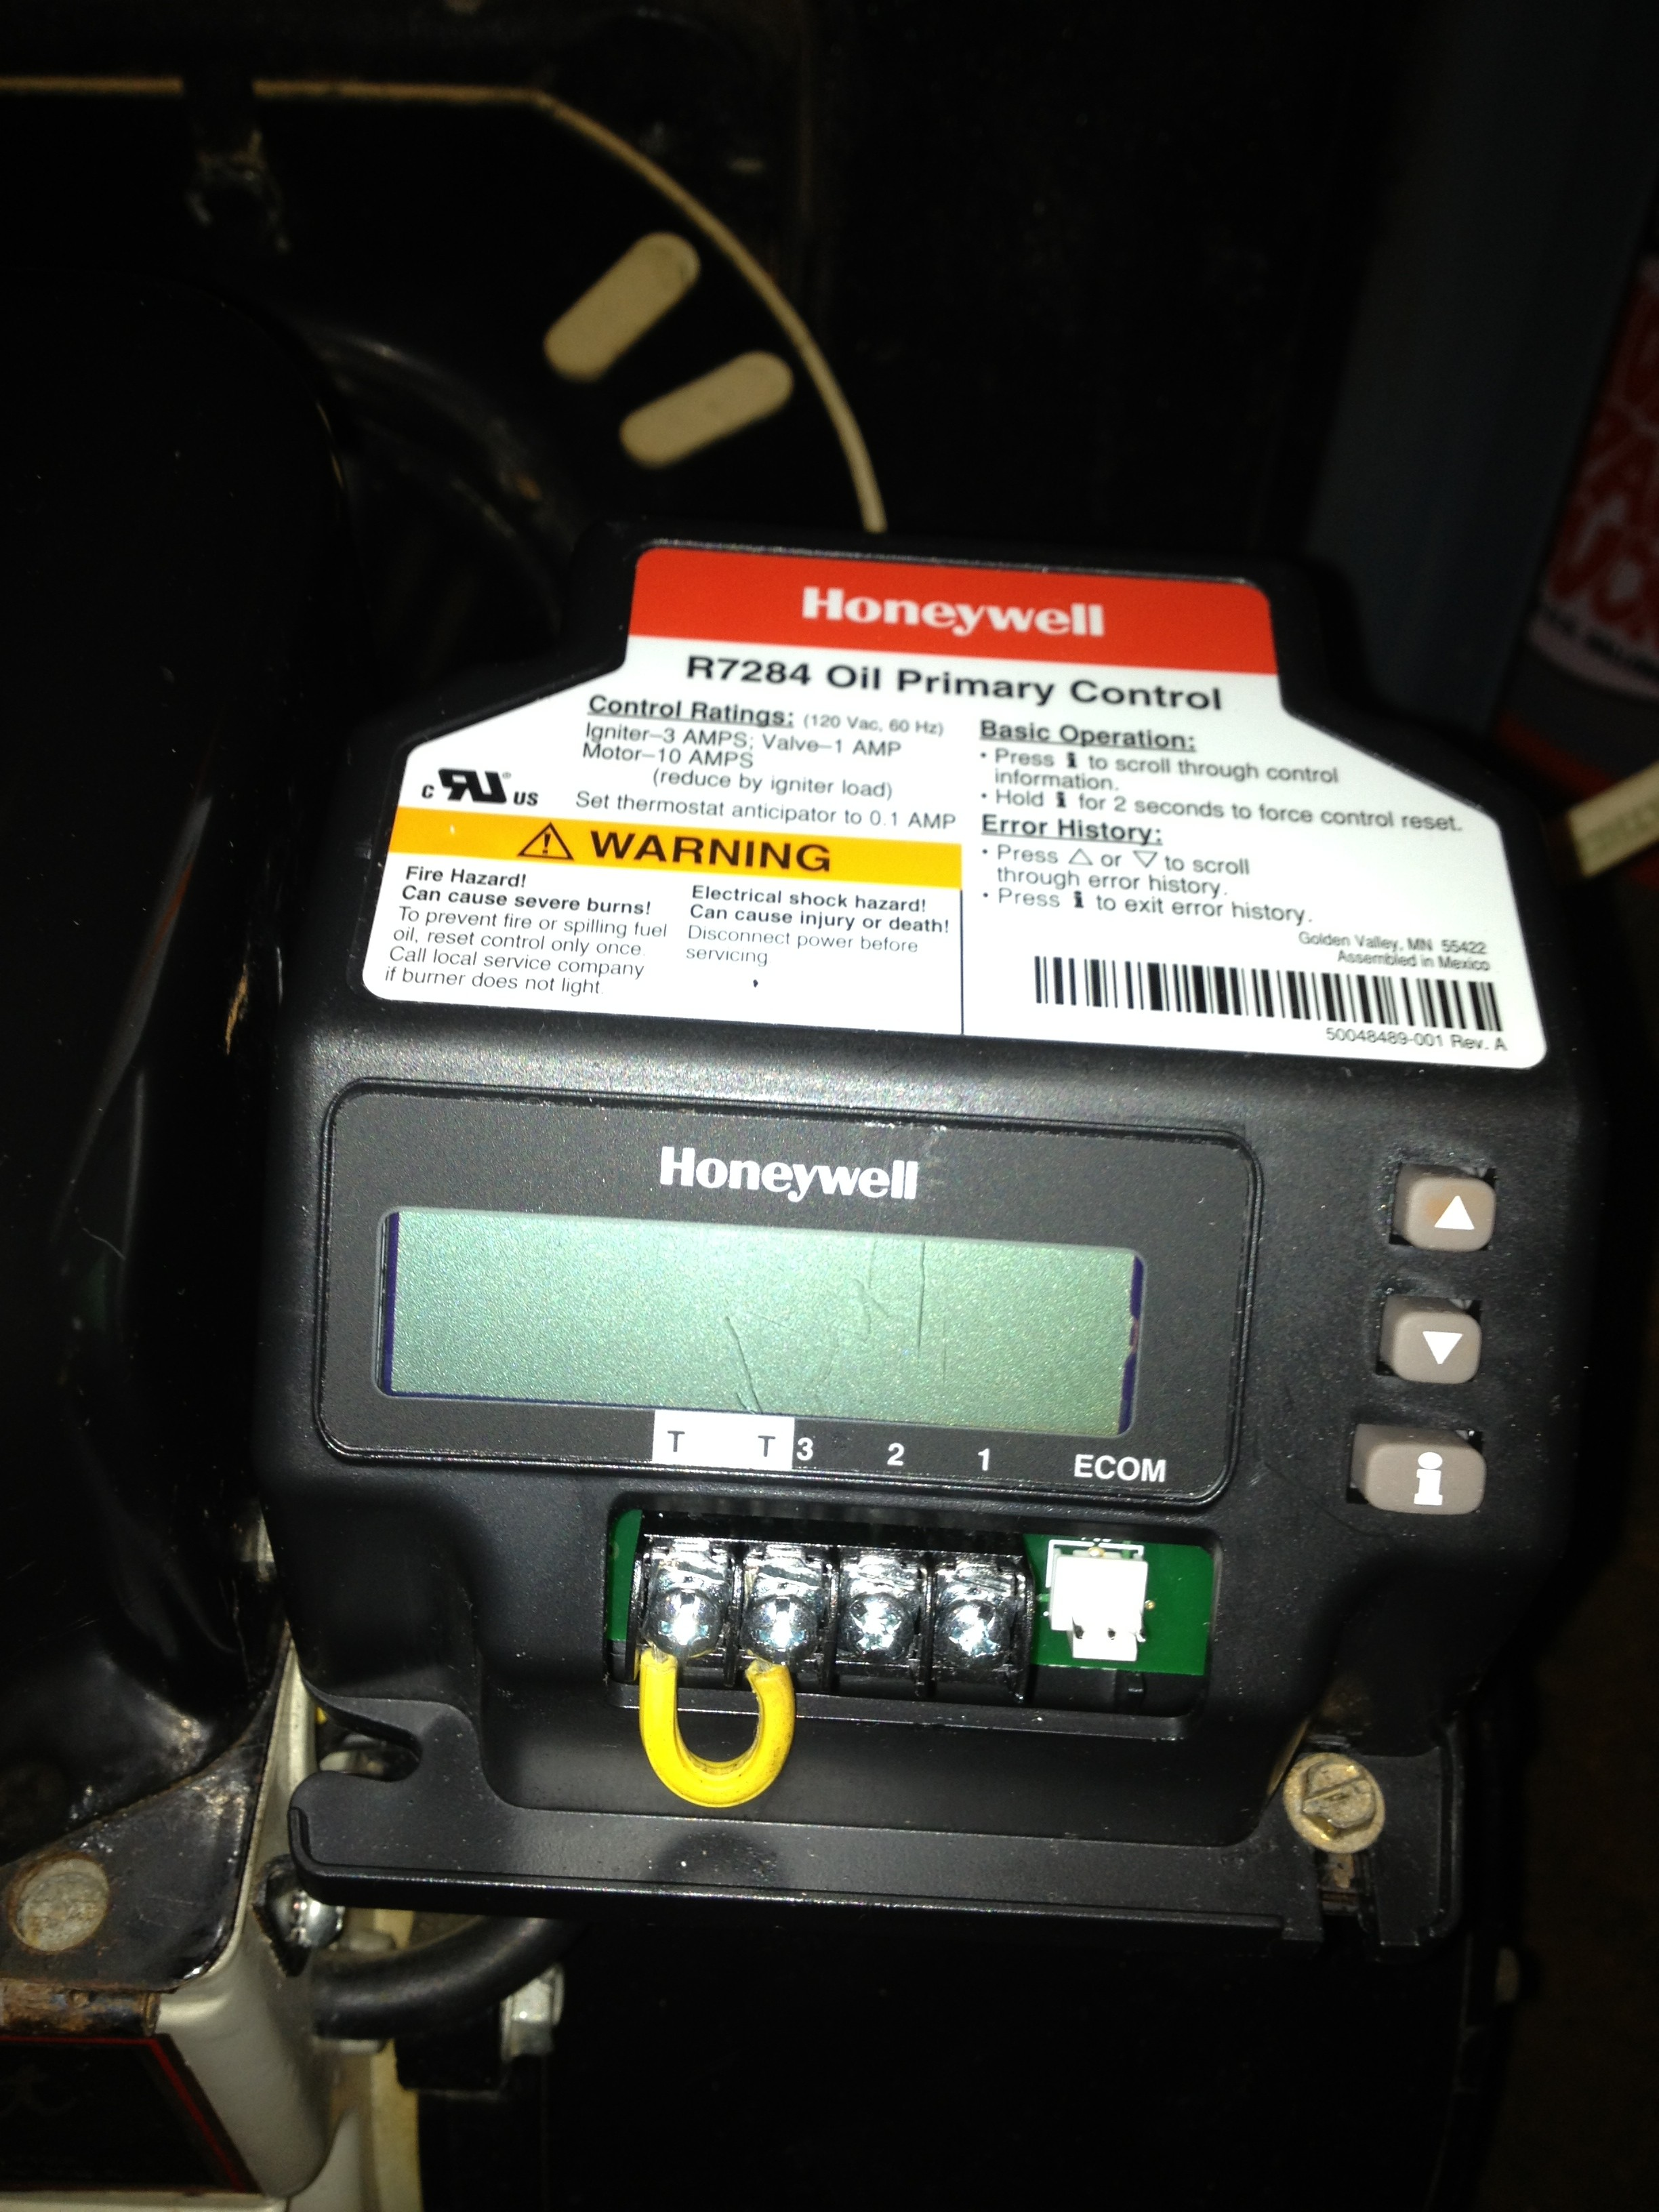 Honeywell R7284U oil primary     Heating Help  The Wall